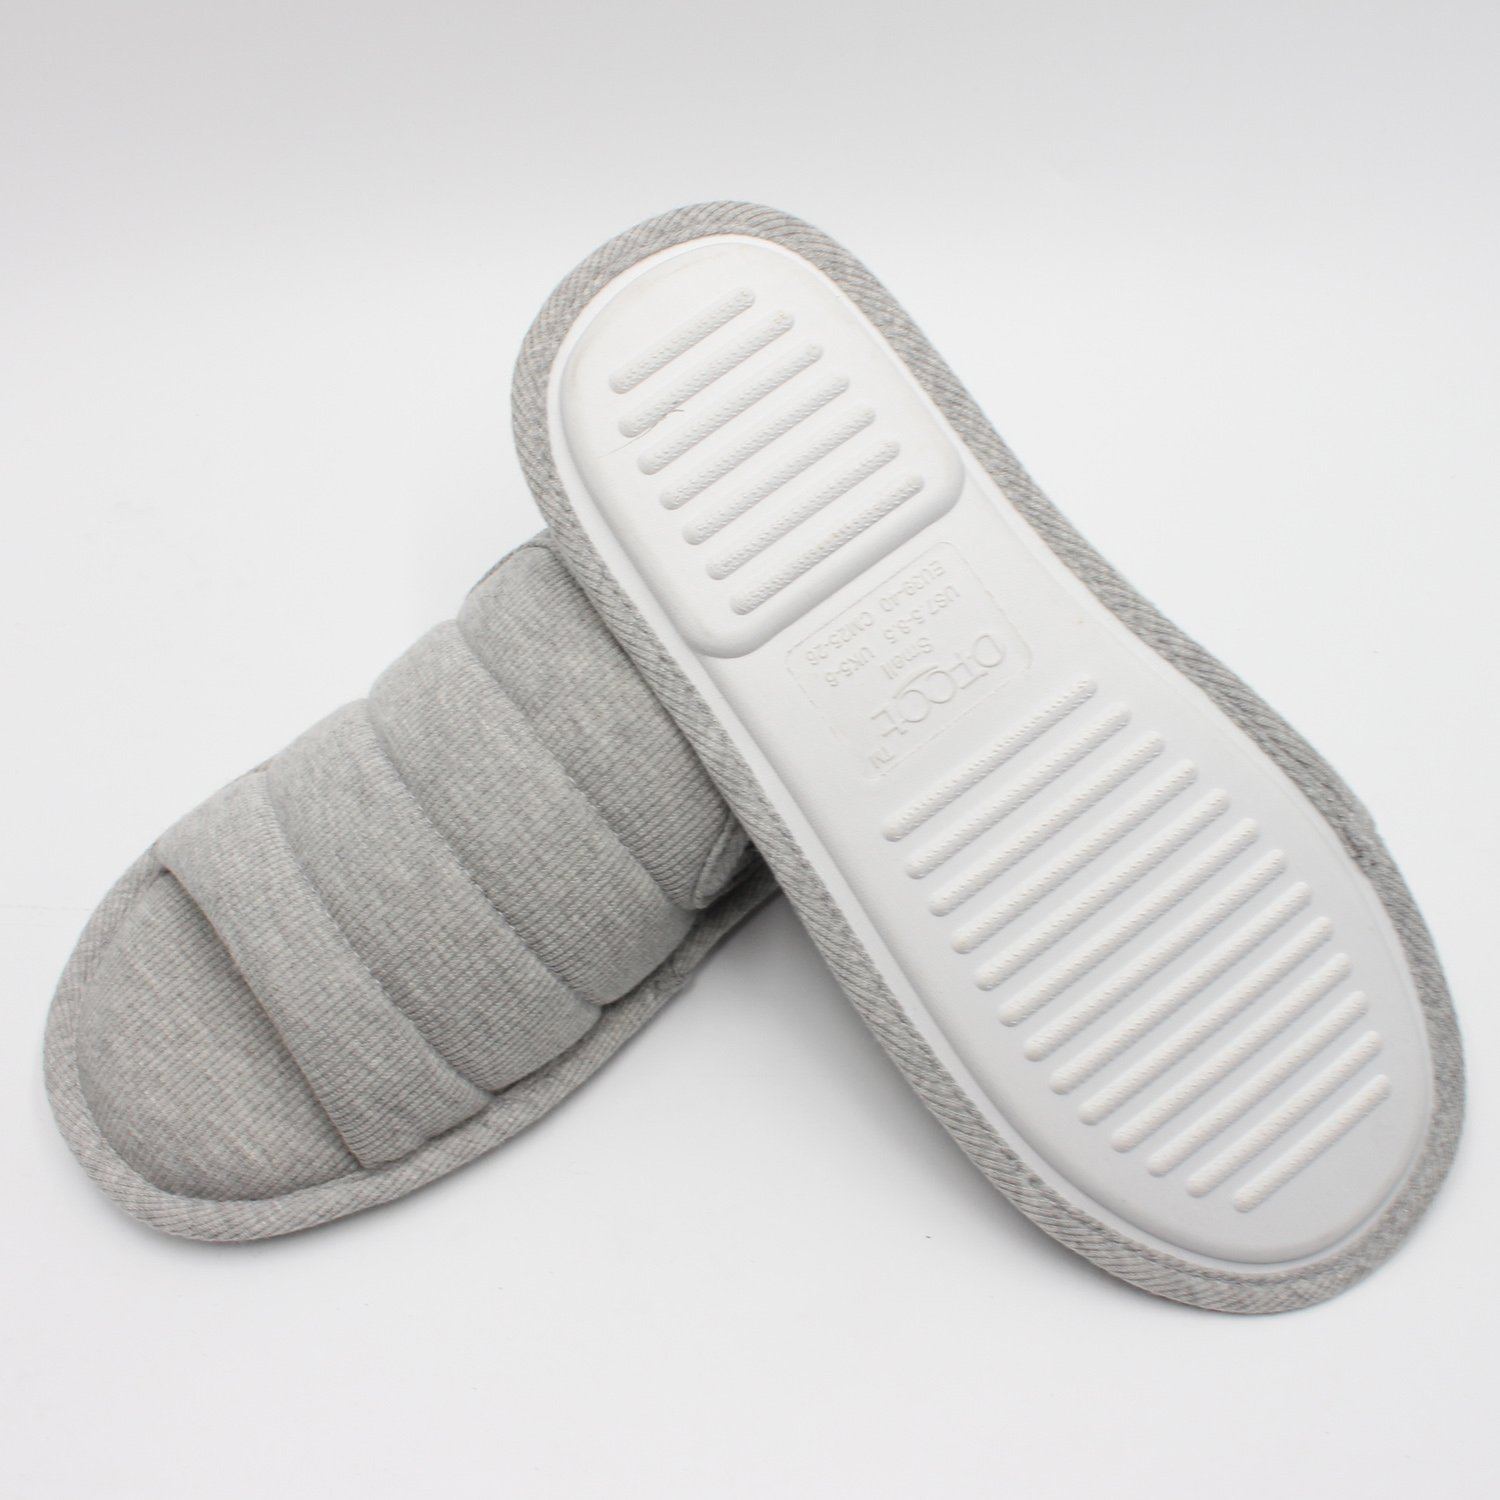 Ofoot Men's Cozy Thread Cloth Open Toe House Slippers, Indoor / Outdoor Slip on Shoes by Ofoot (Image #2)